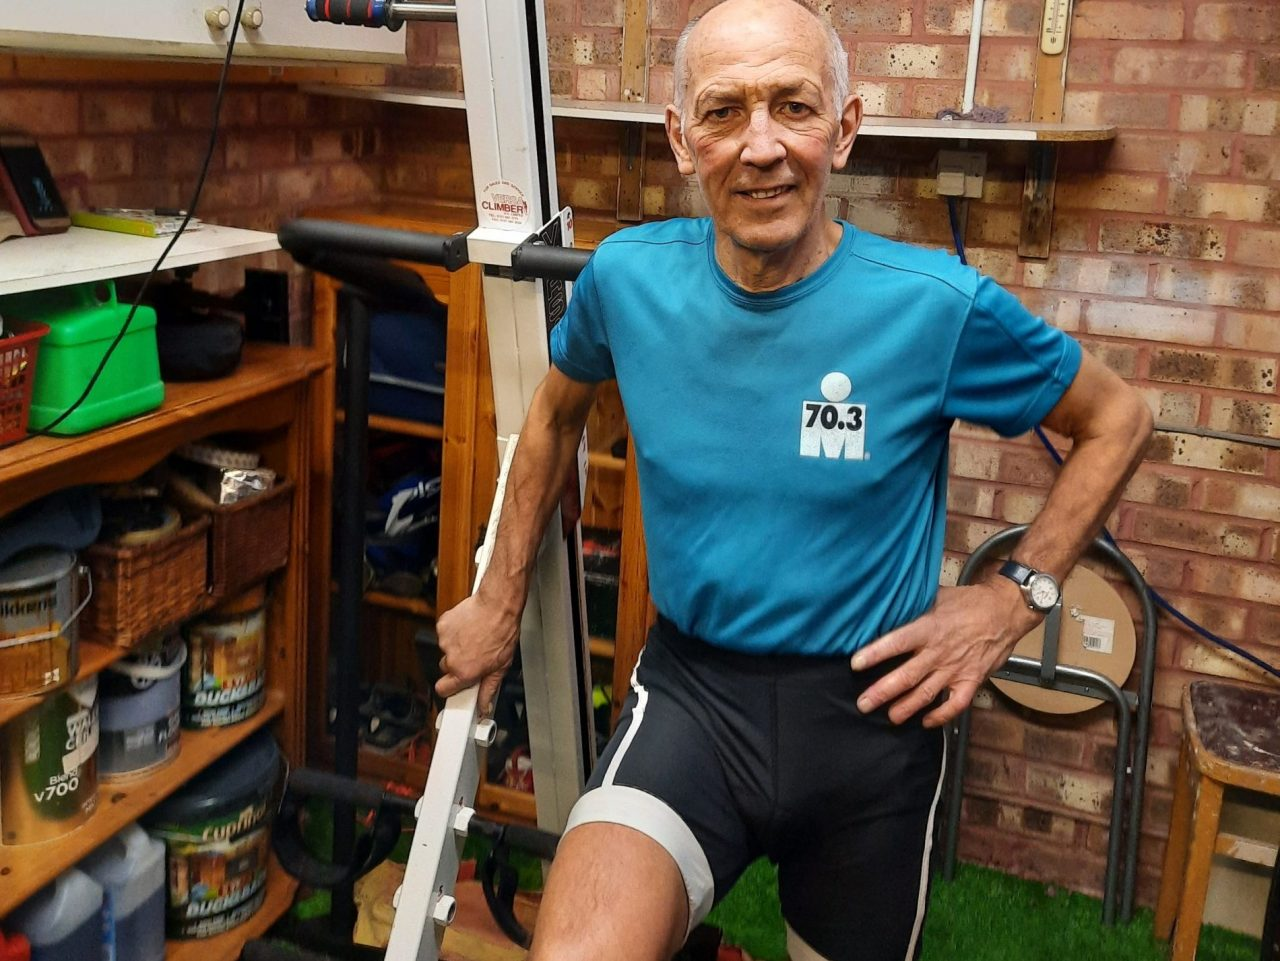 Climbing the Height of Mount Everest 70 Times...At 70!